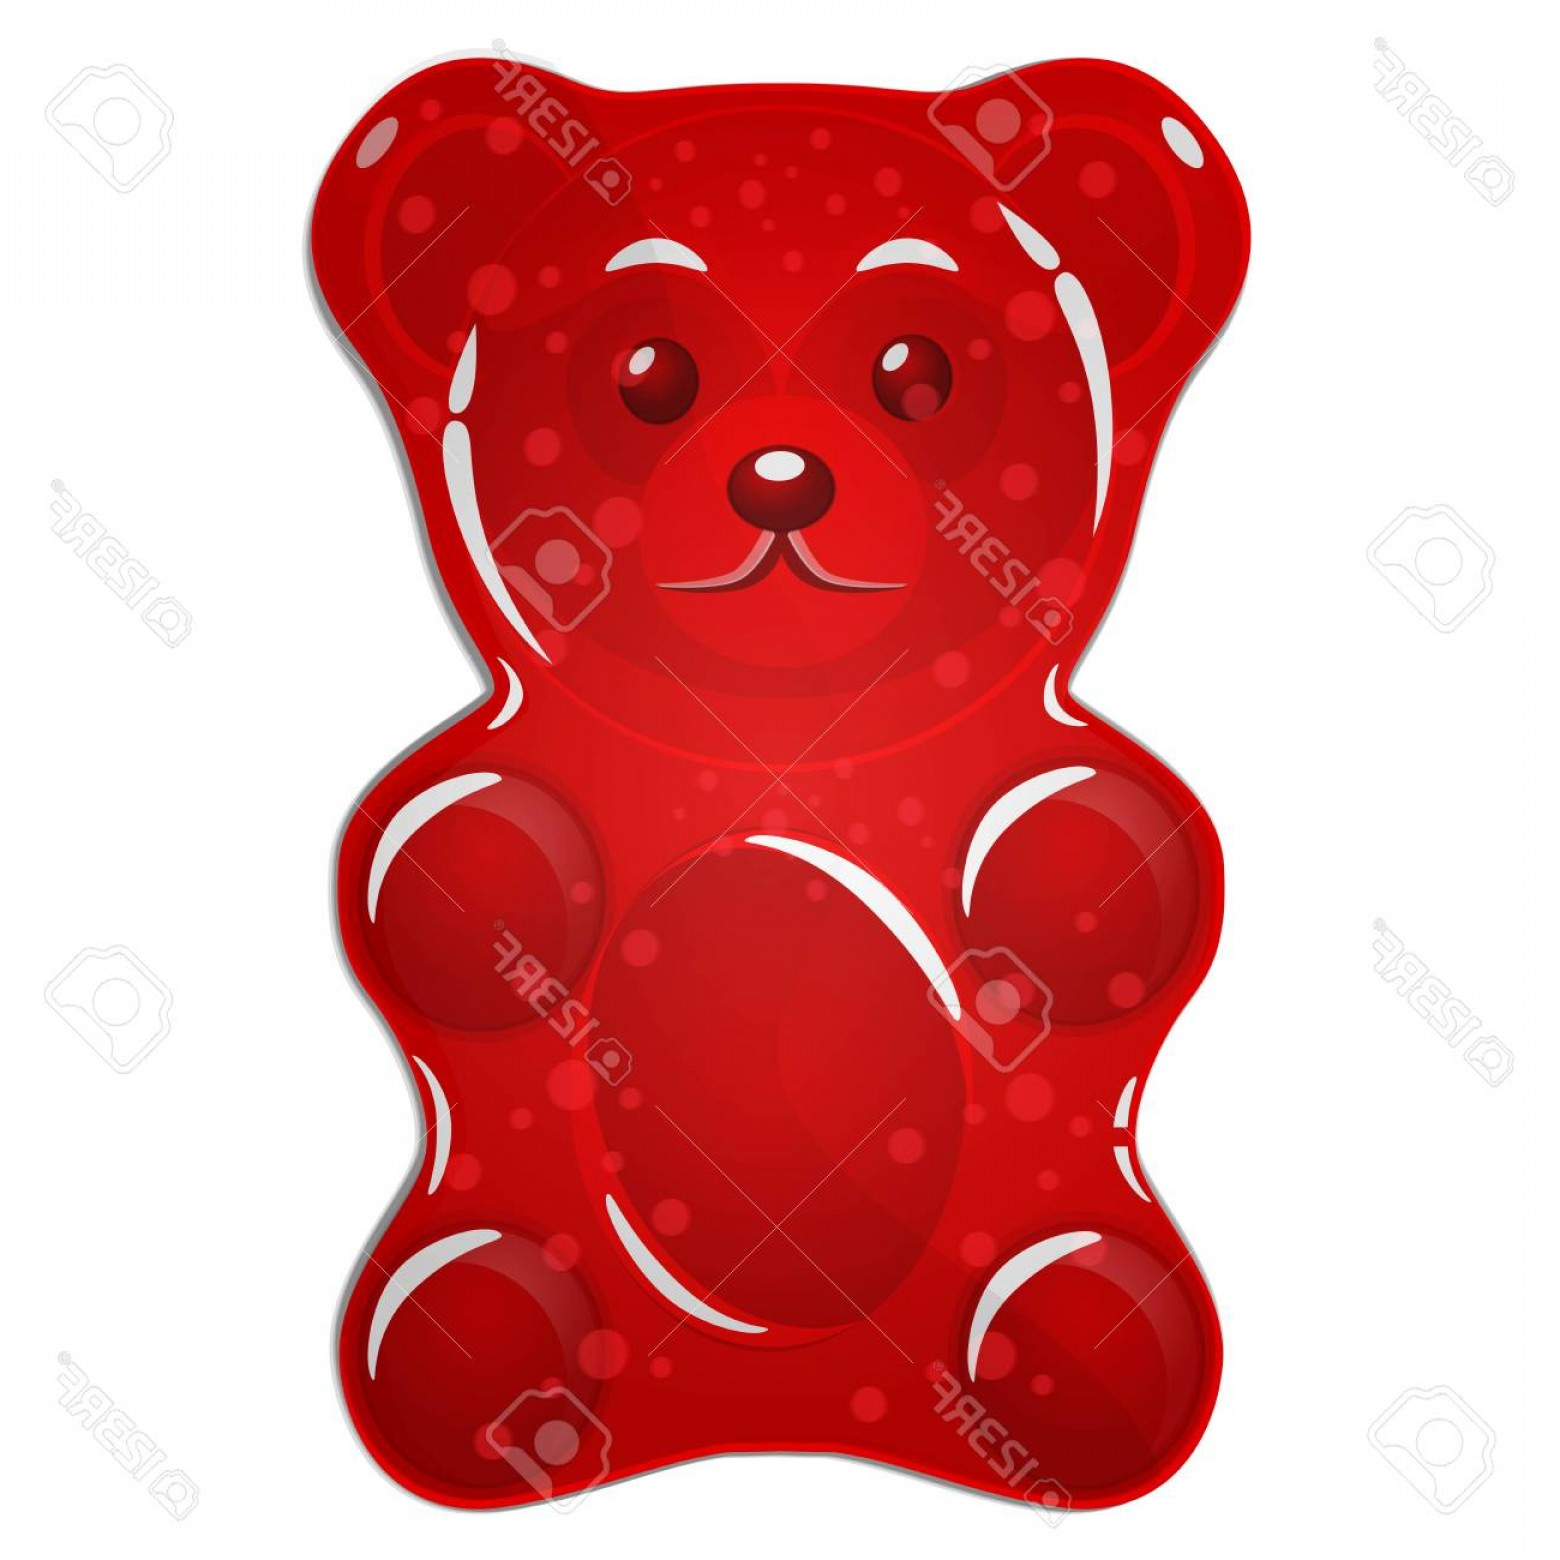 Gummy Bear Vector: Photostock Vector Red Gummy Bear Candy Isolated On White Background